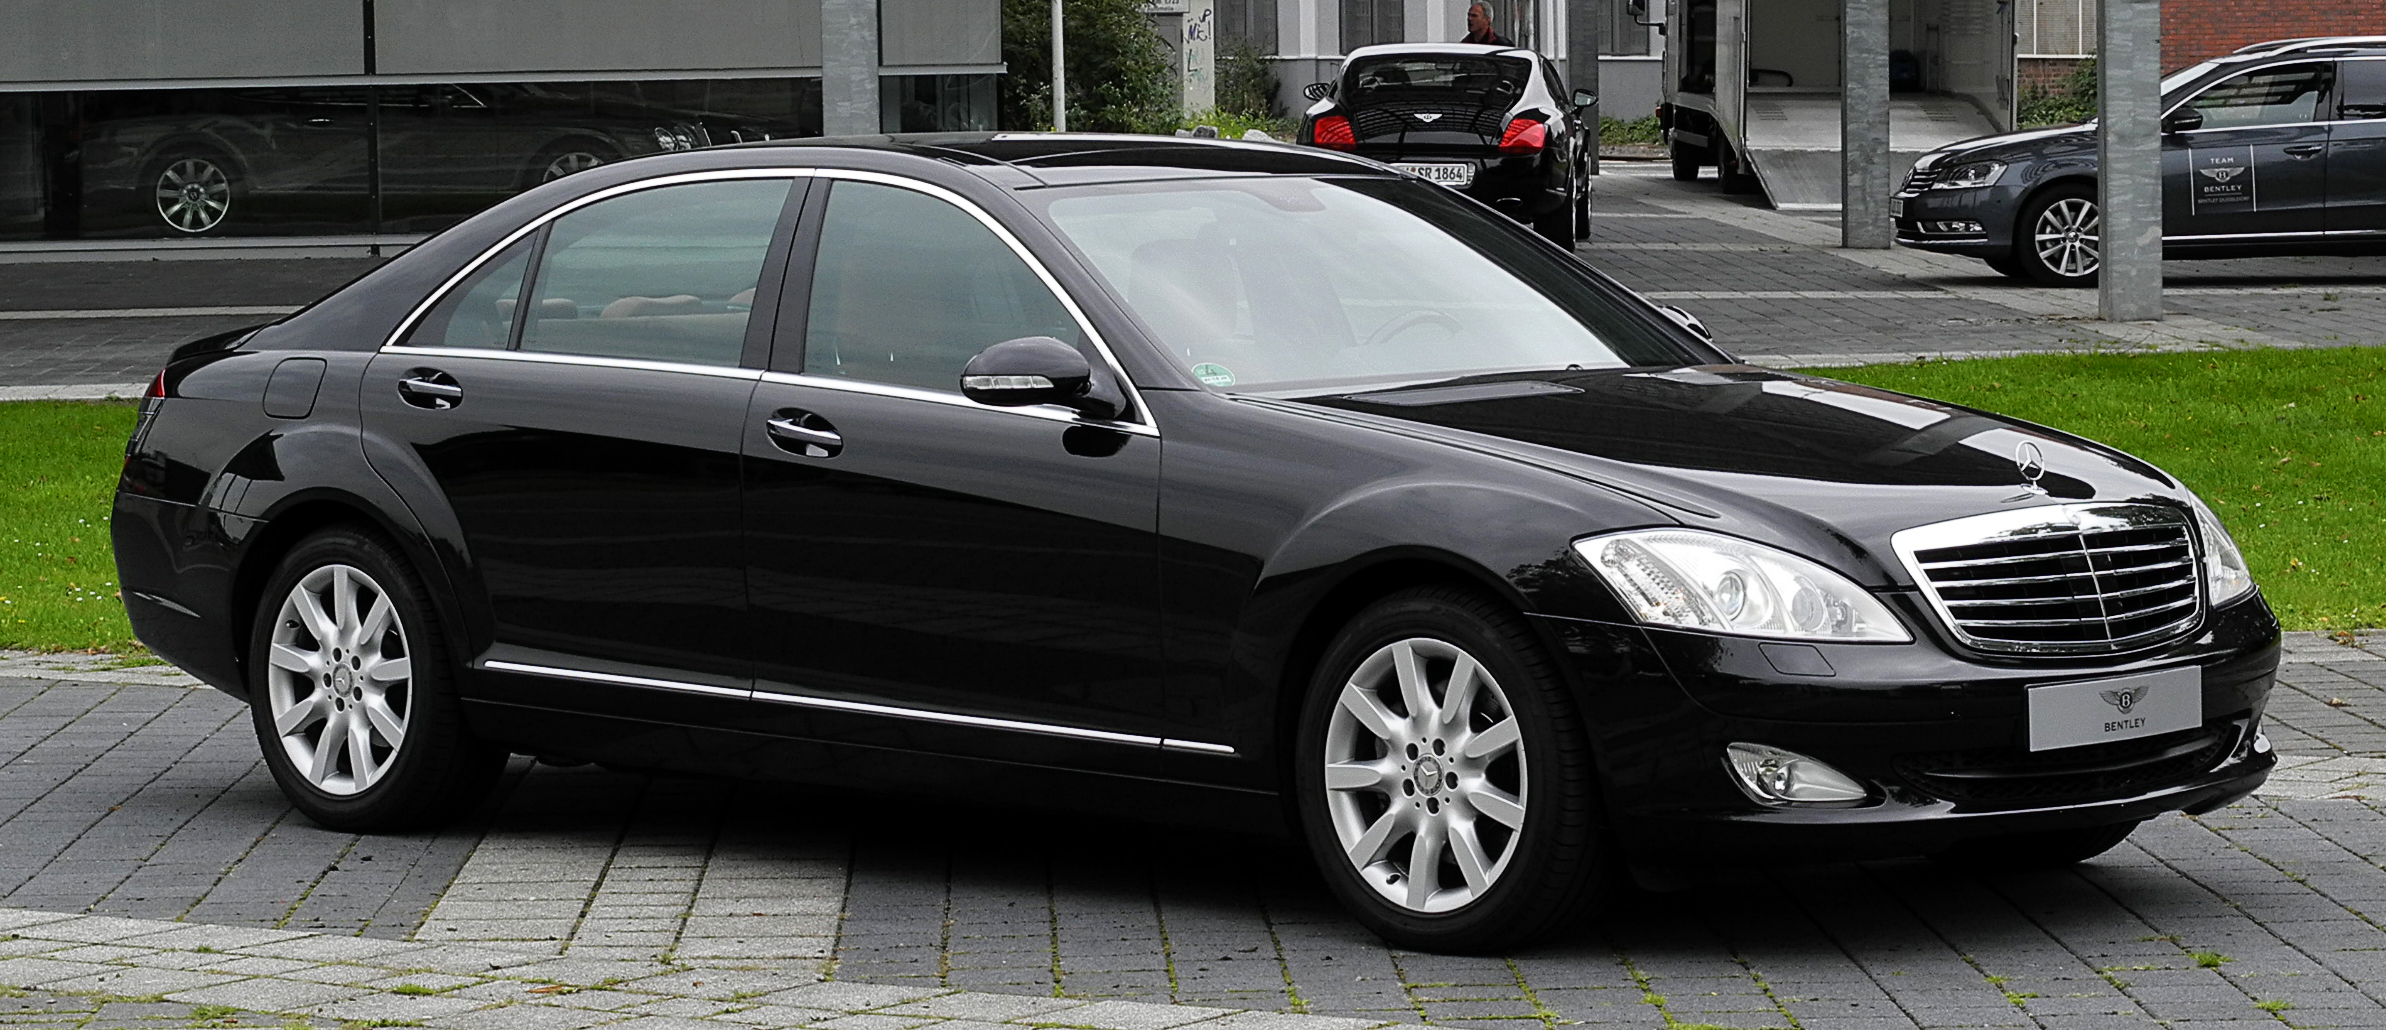 Mercedes benz e 320 cdi 4matic technical details history for 320 mercedes benz